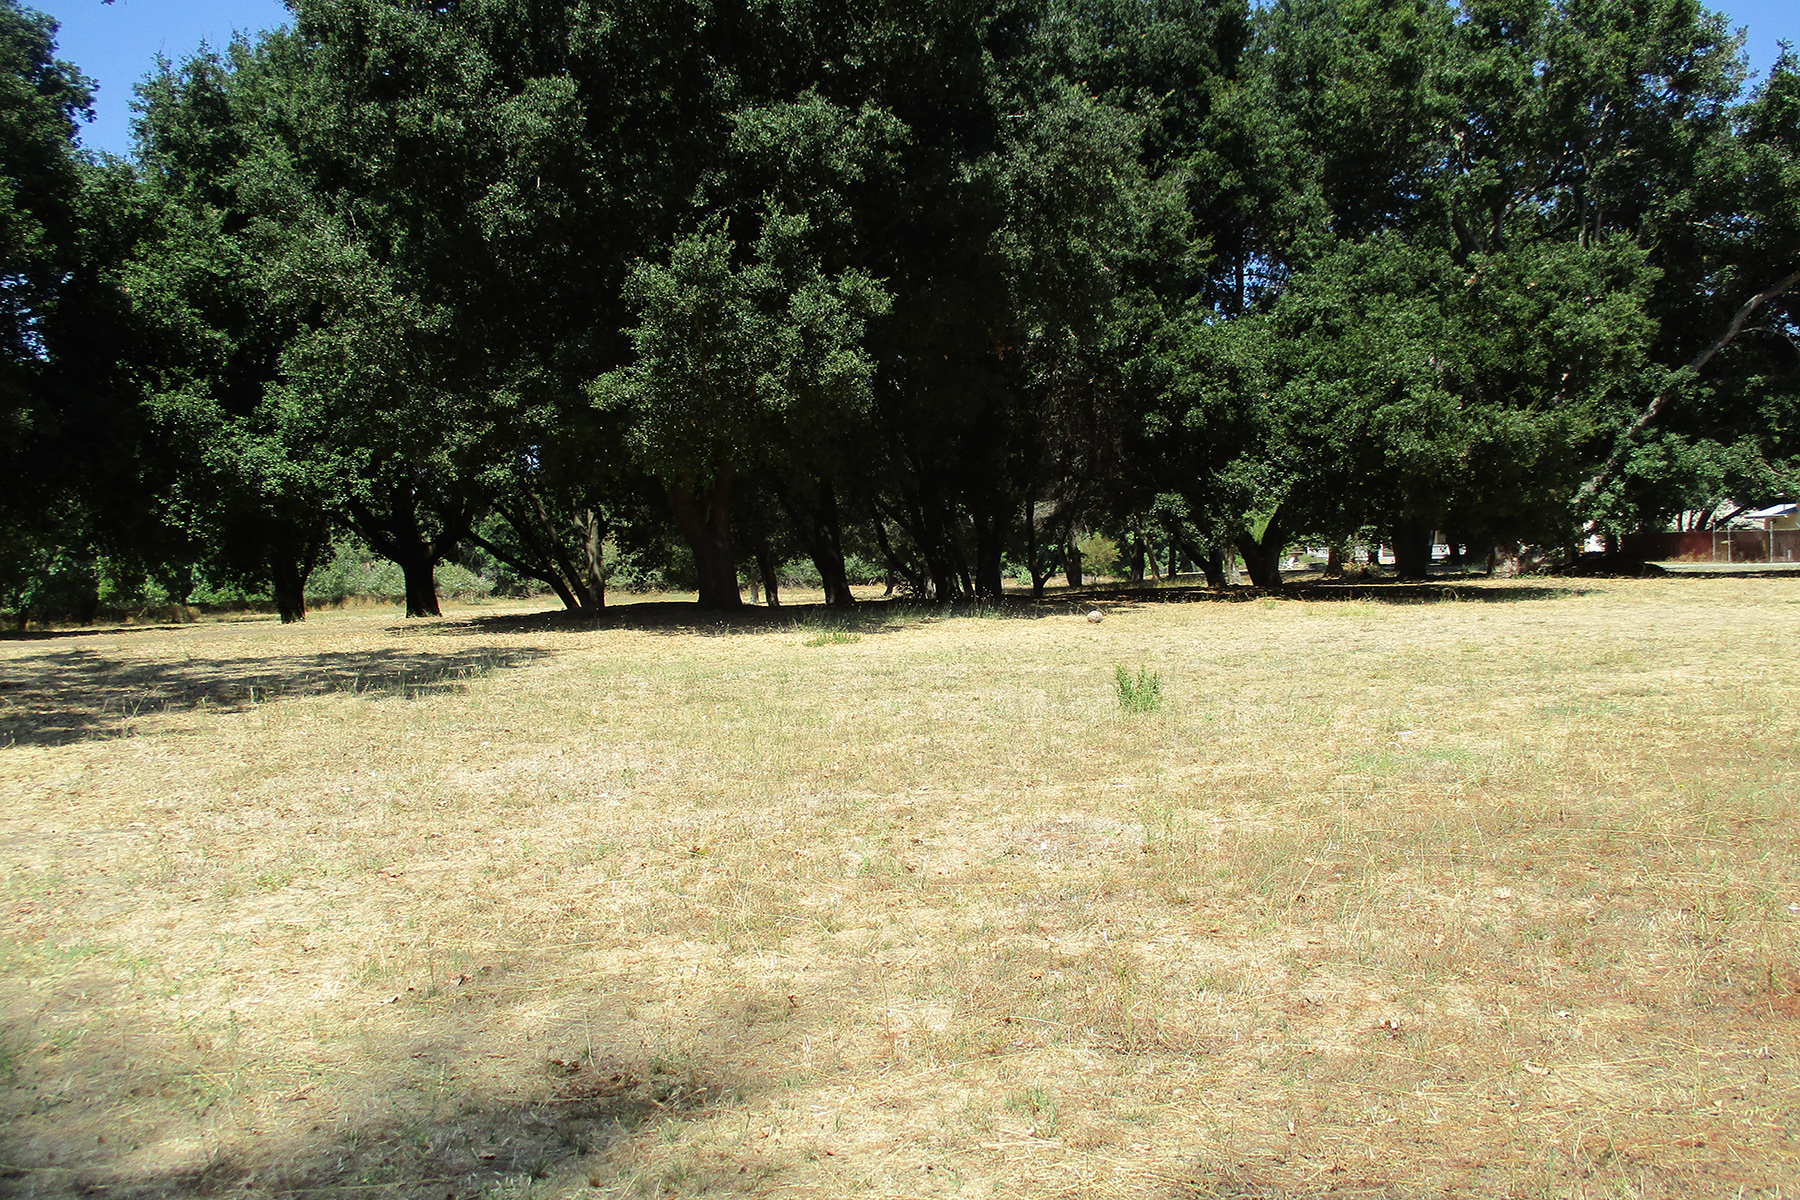 Terreno por un Venta en Over Six Acres of Exceptional Development Opportunity 5050 Old Redwood Hwy Santa Rosa, California, 95403 Estados Unidos